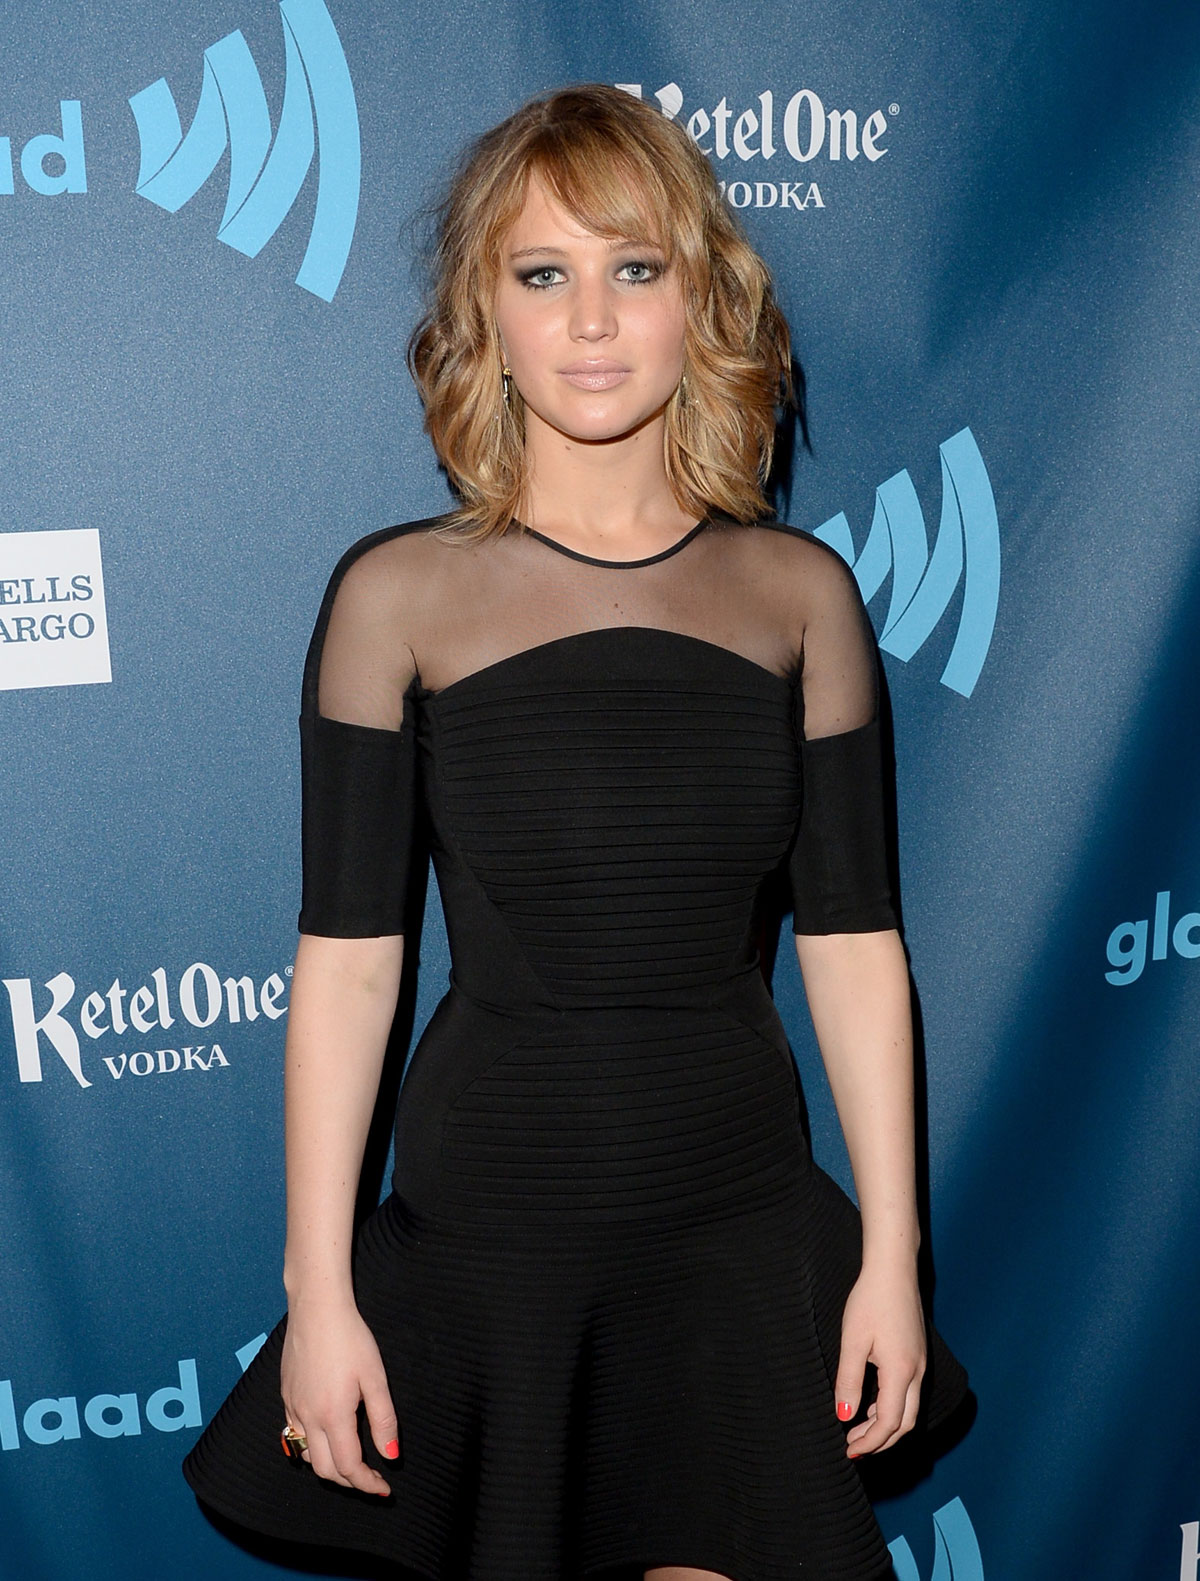 Gallery of Jennifer Lawrence: August 2013